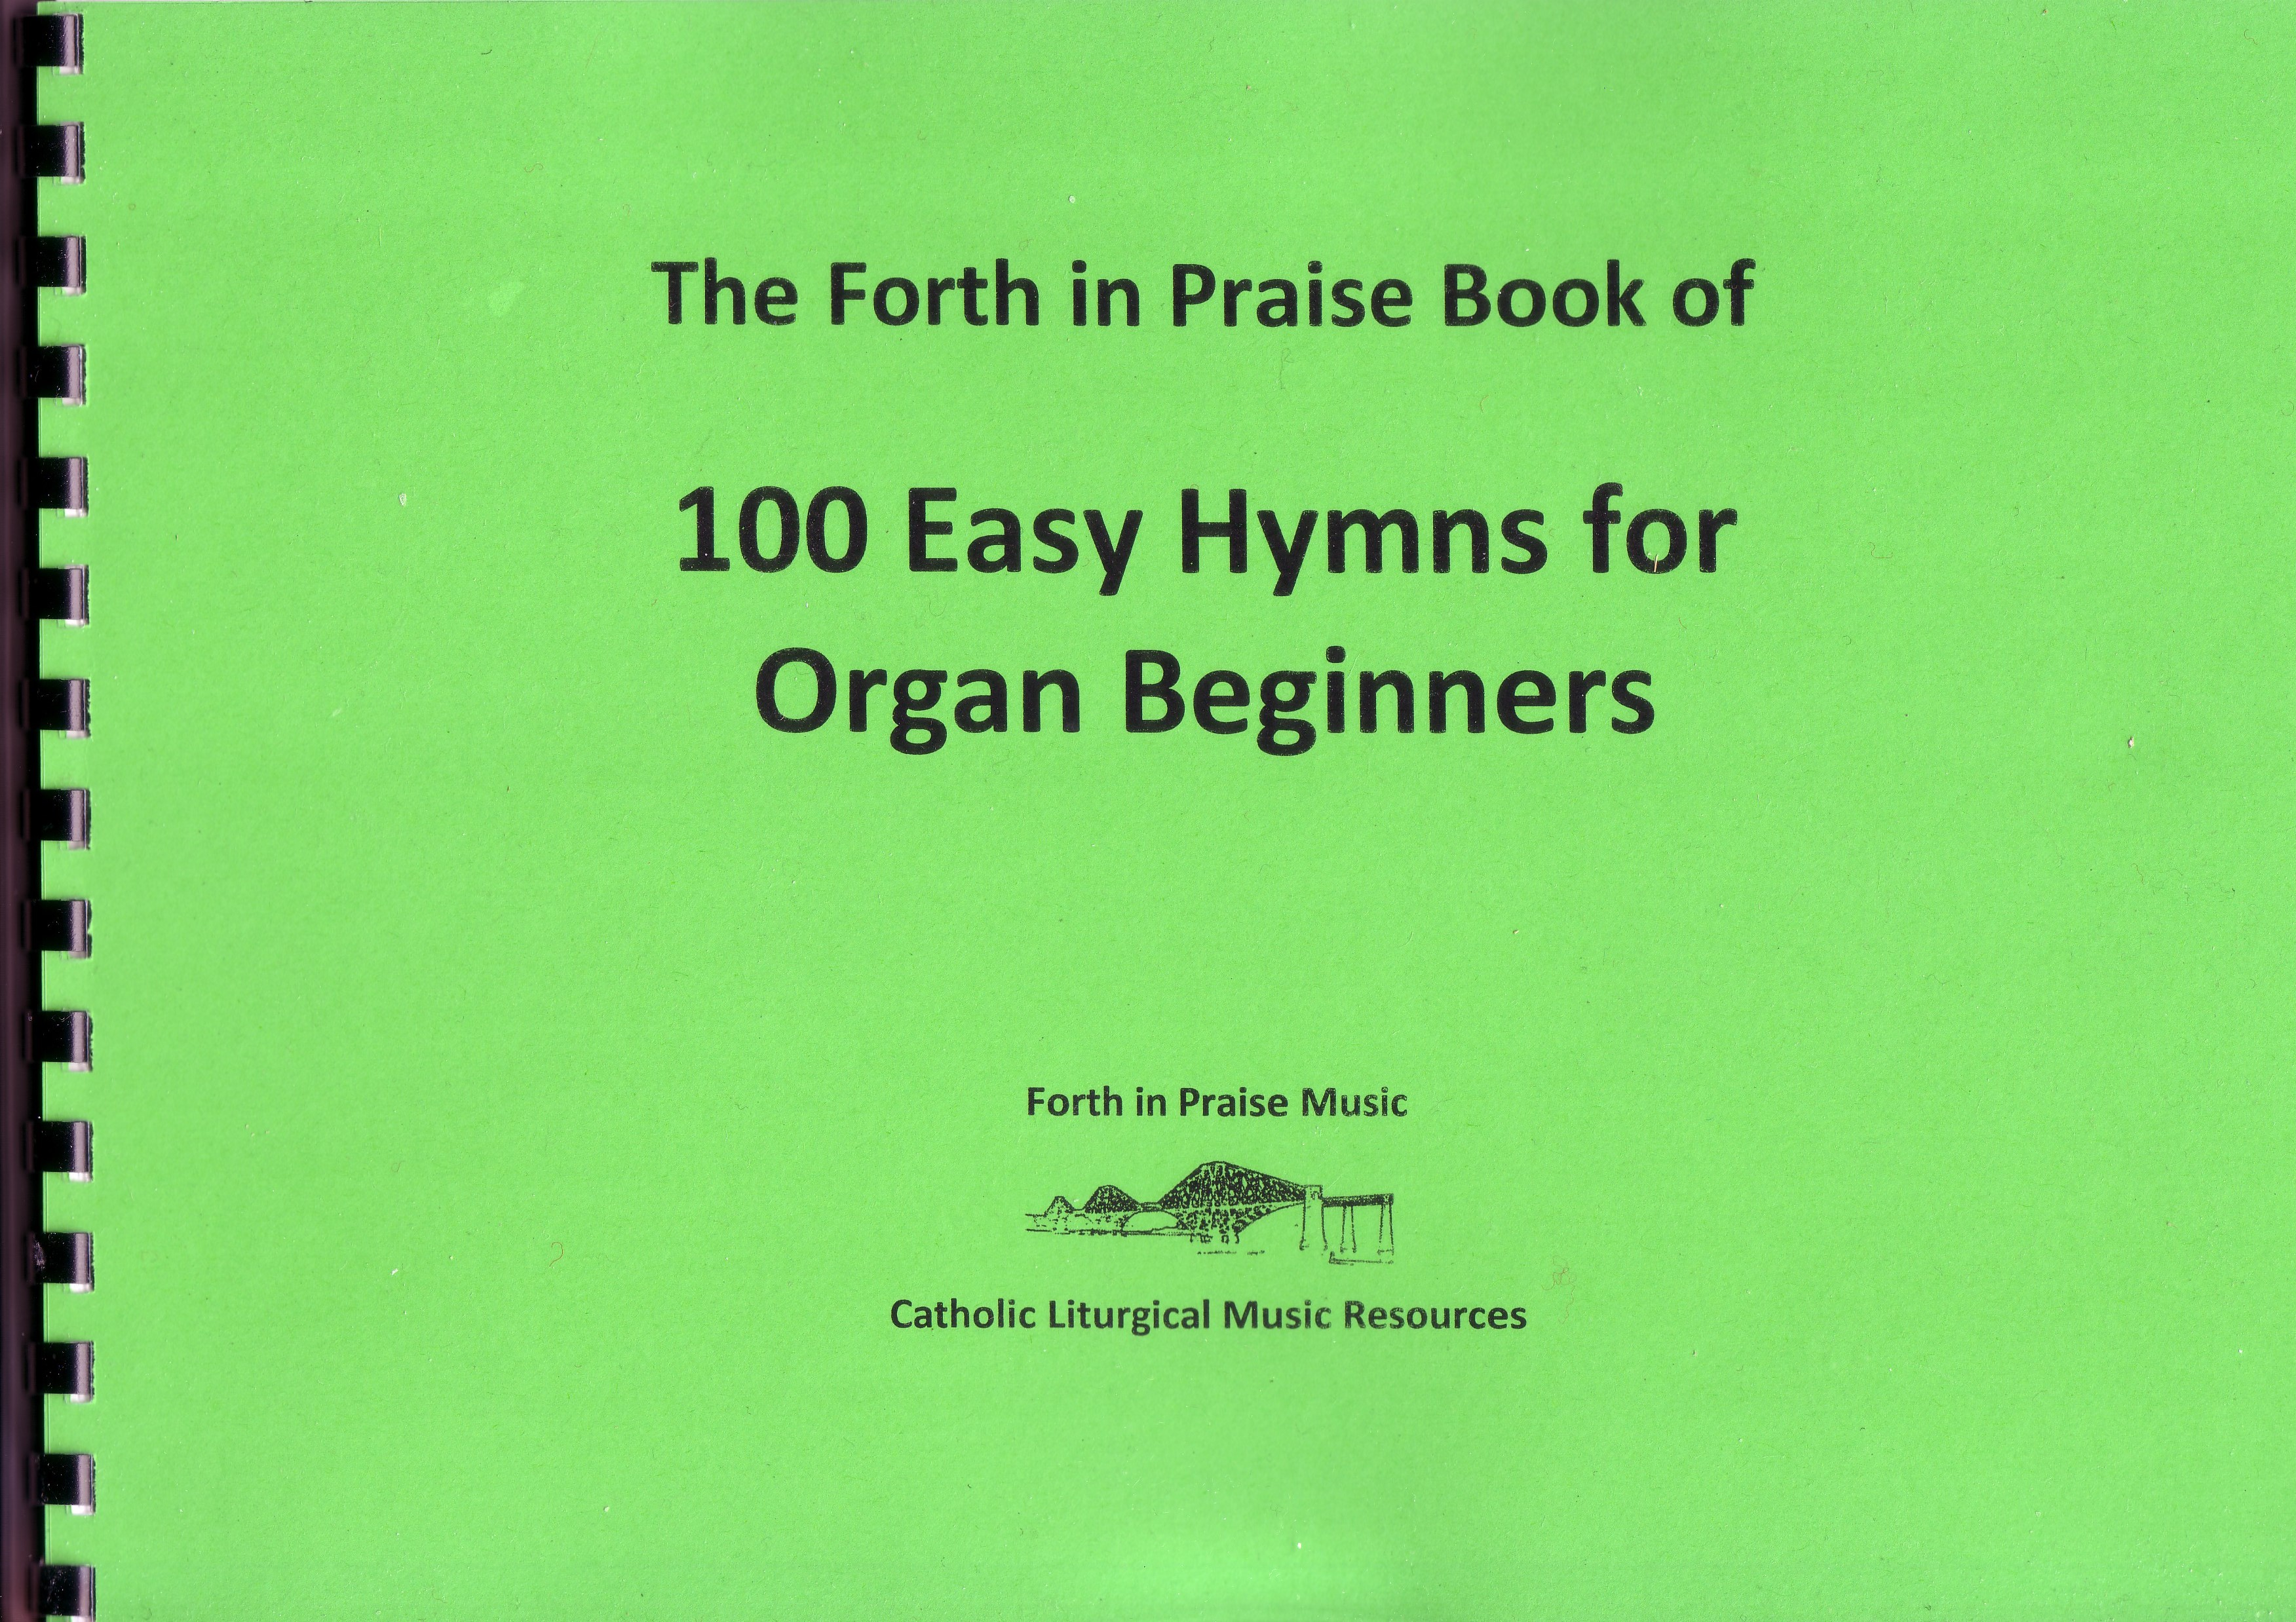 100 Hymns cover